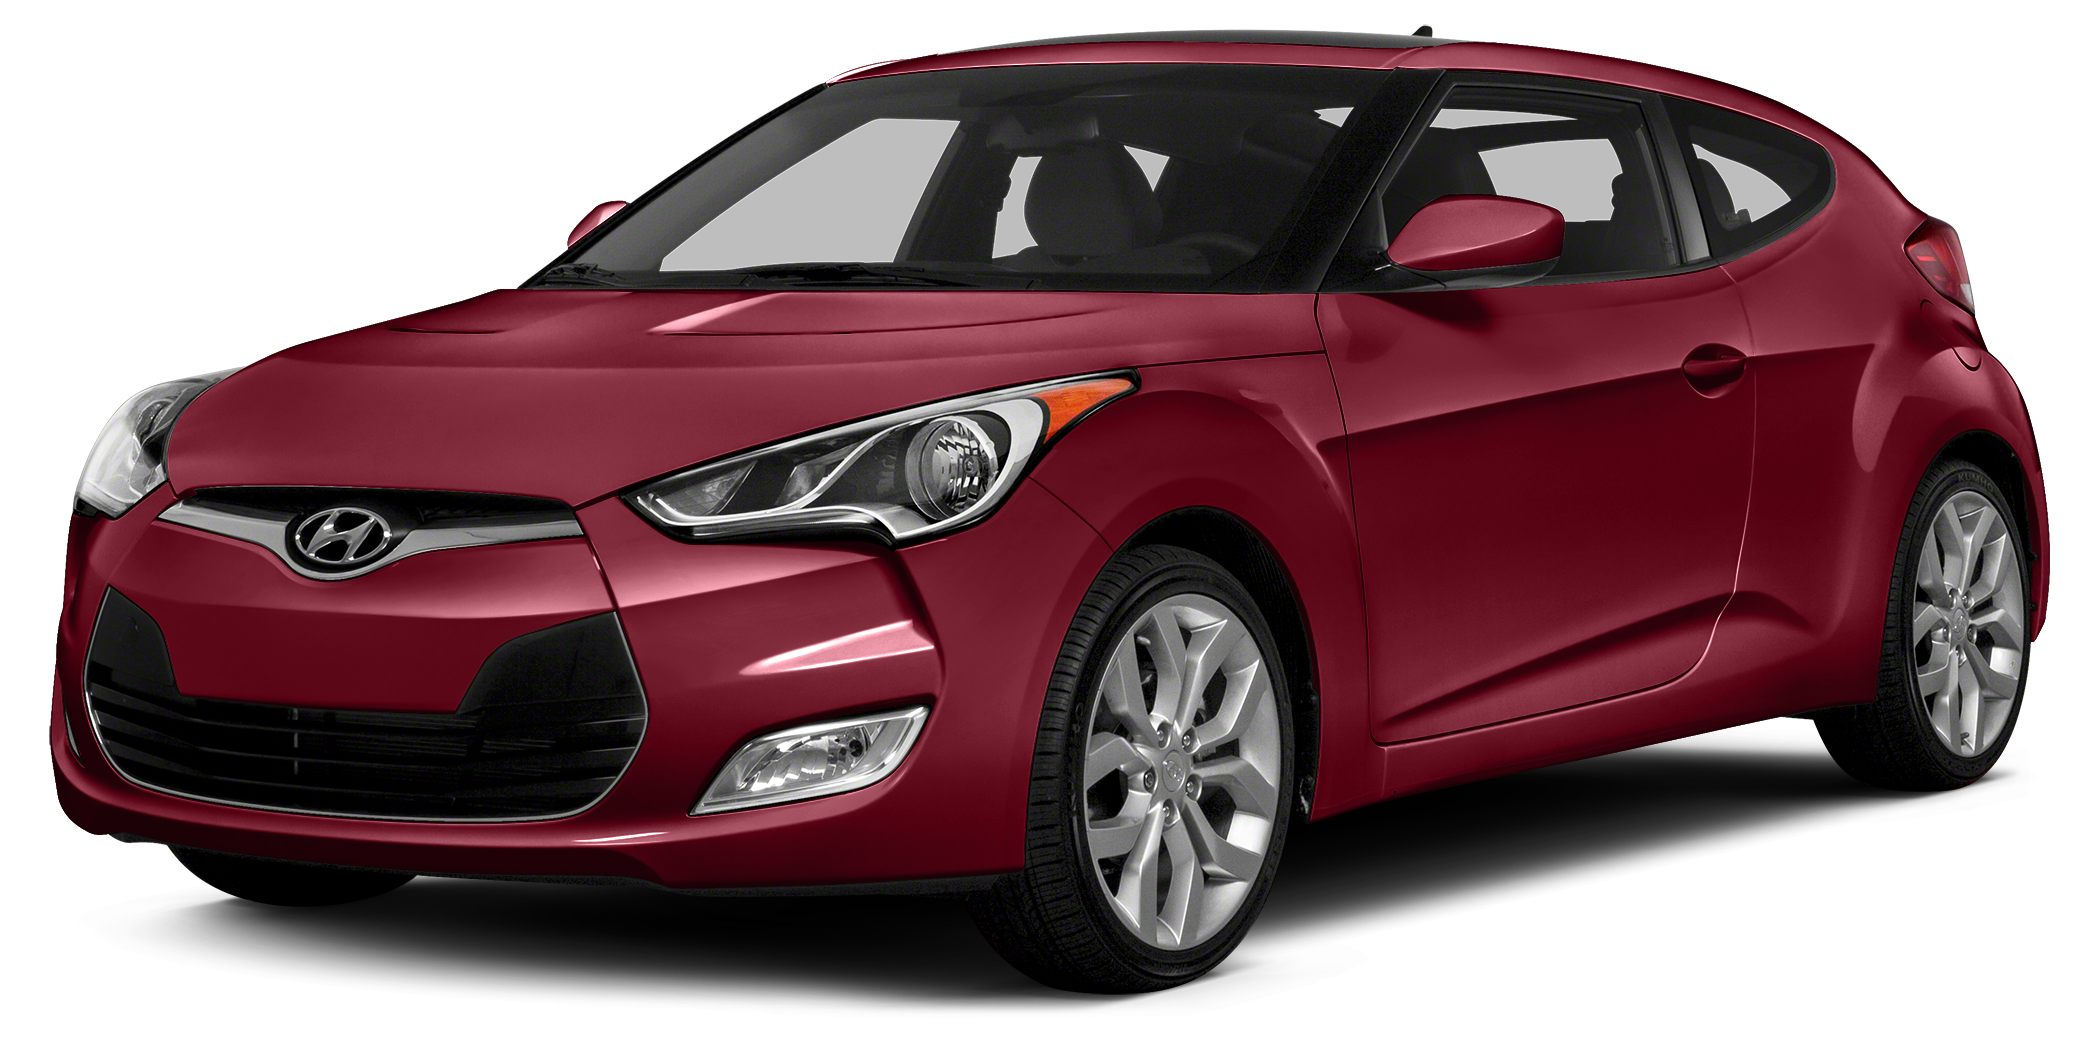 2013 Hyundai Veloster Base wGray Hyundai Certified and with only 6k miles on this one owner perfec